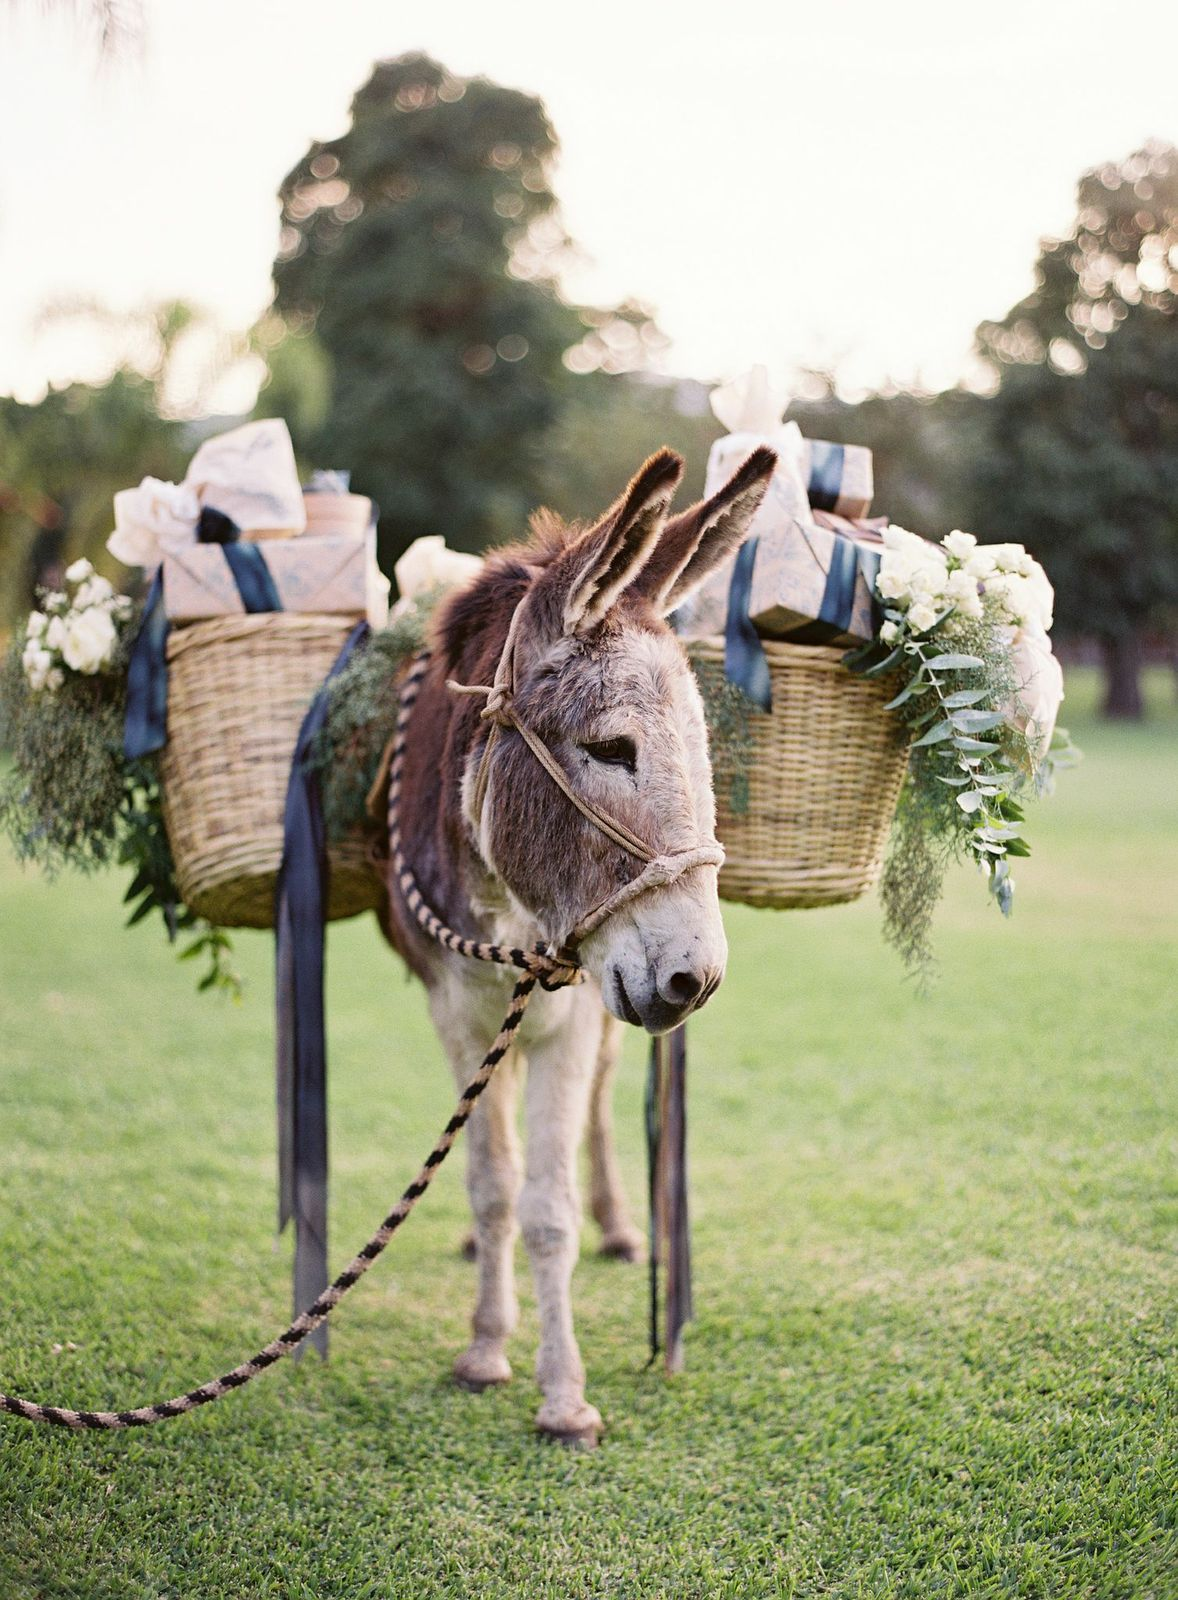 Our beautiful gifts, each wrapped with hand stamped wrapping paper, look darn cute on our favorite donkey!  ( and yes they are empty and light- we even tried it out ourselves to make sure....)